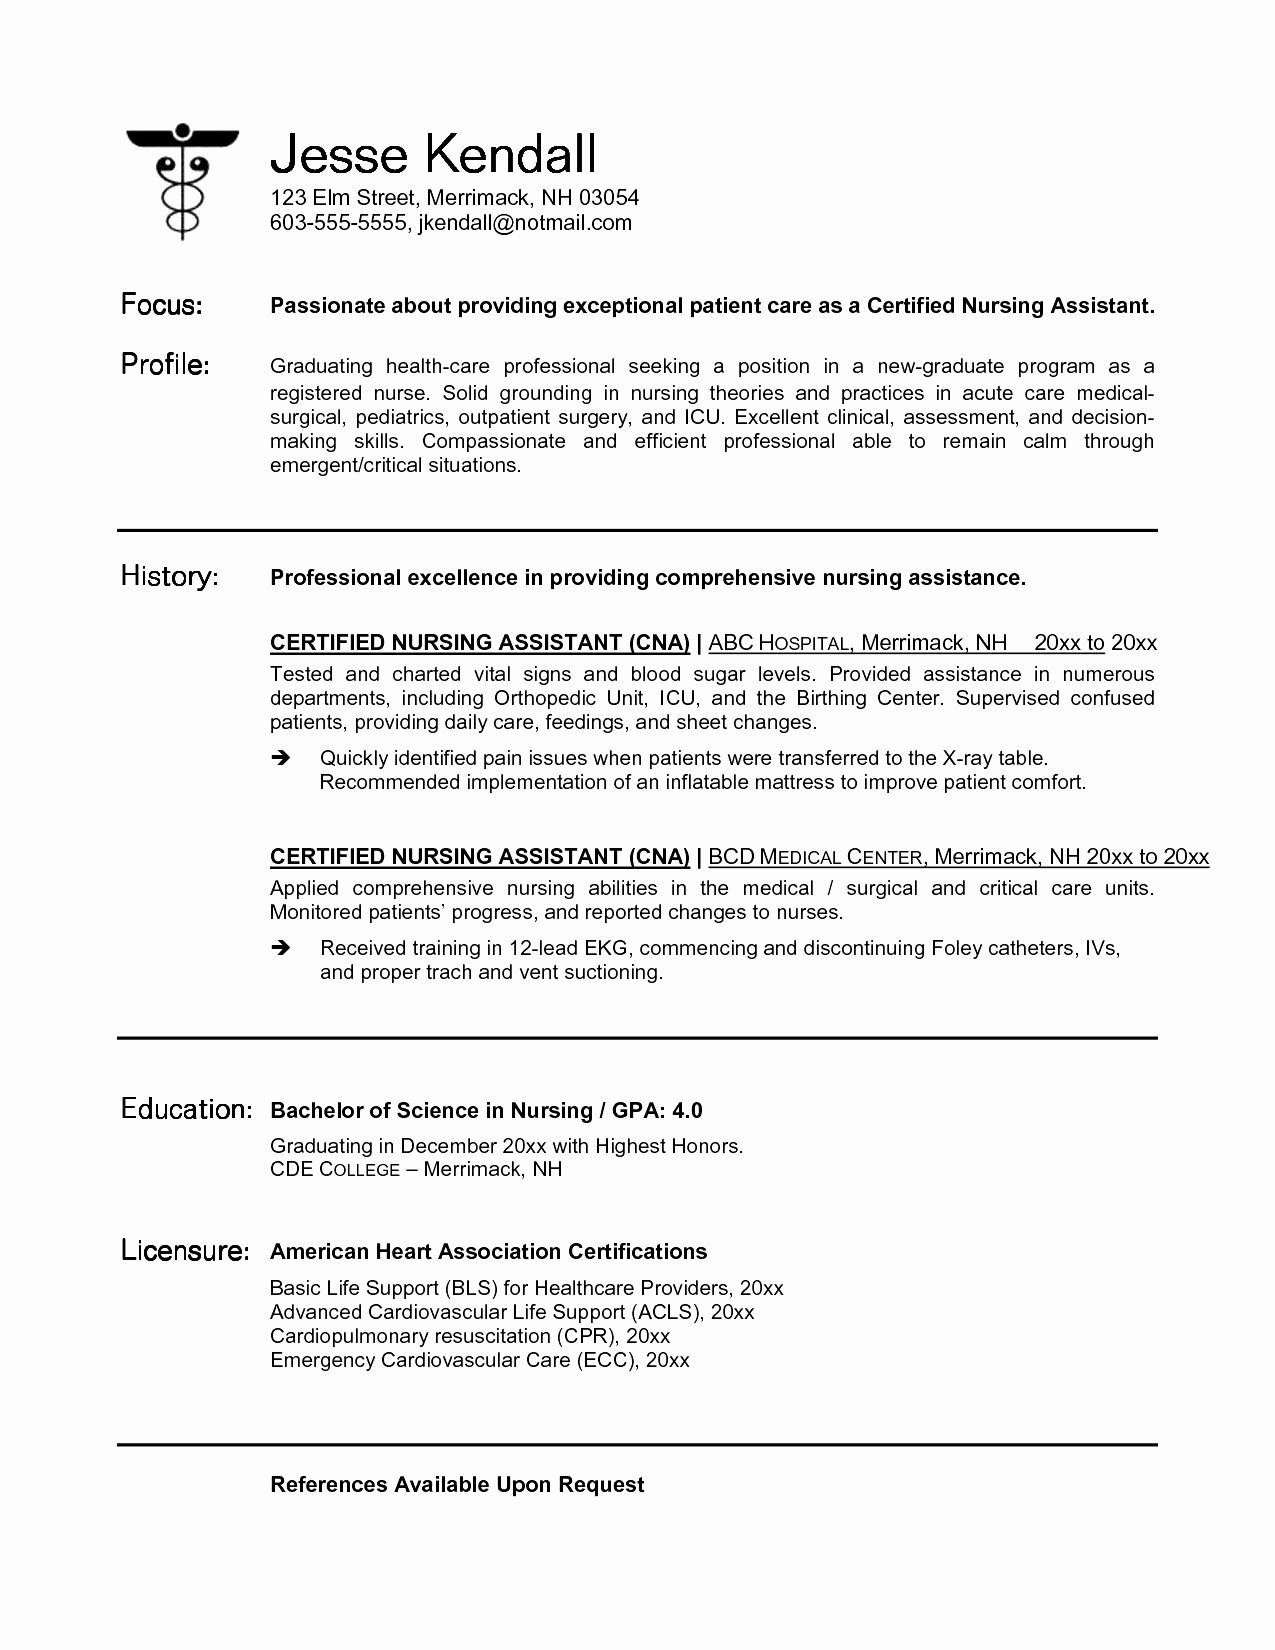 Things To Highlight On A Nurse Resume New Grad